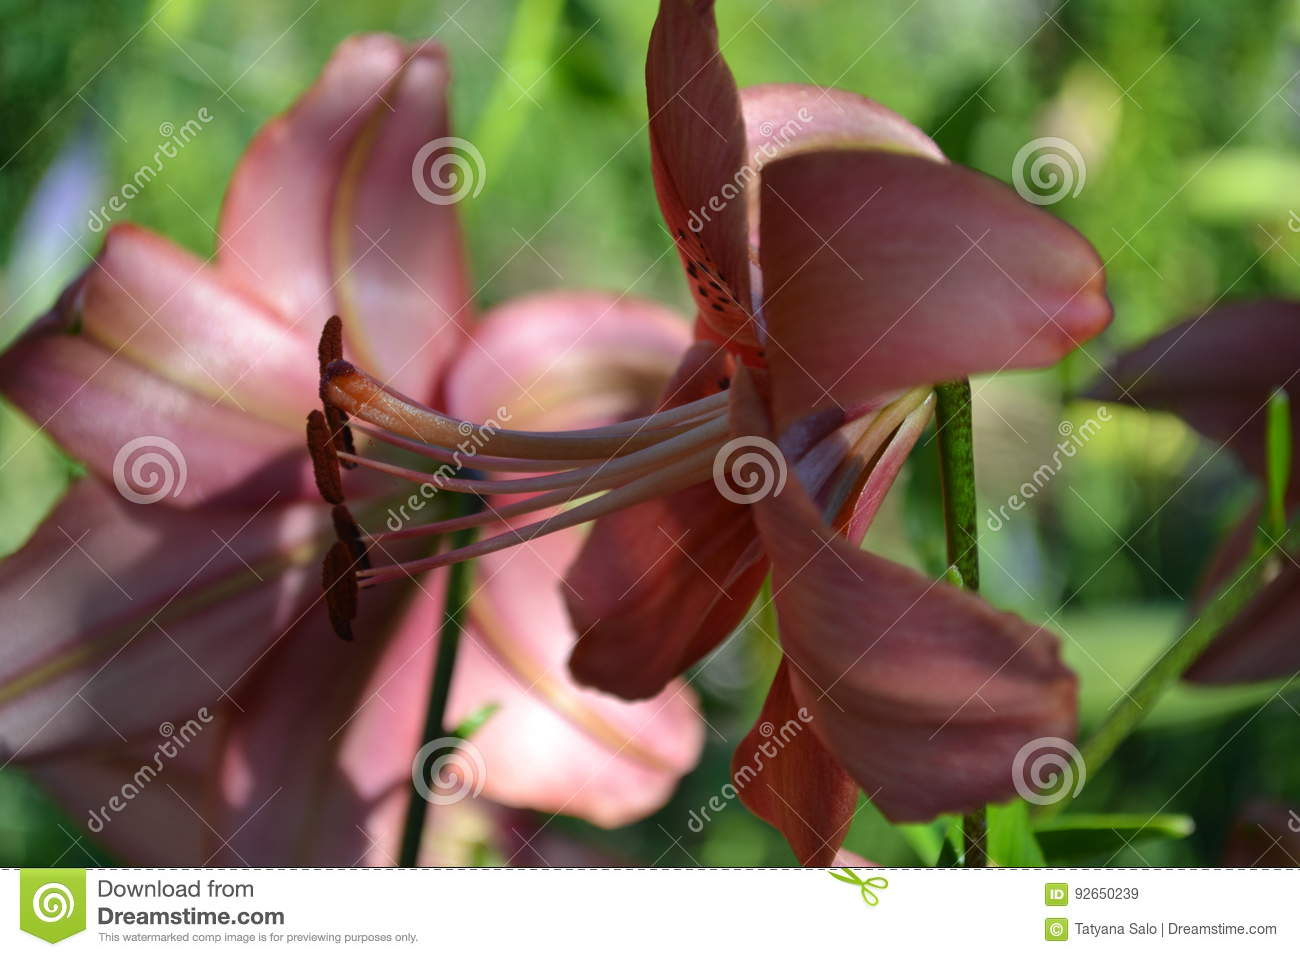 Lily flower stock image image of flower plant yellow 92650239 download comp izmirmasajfo